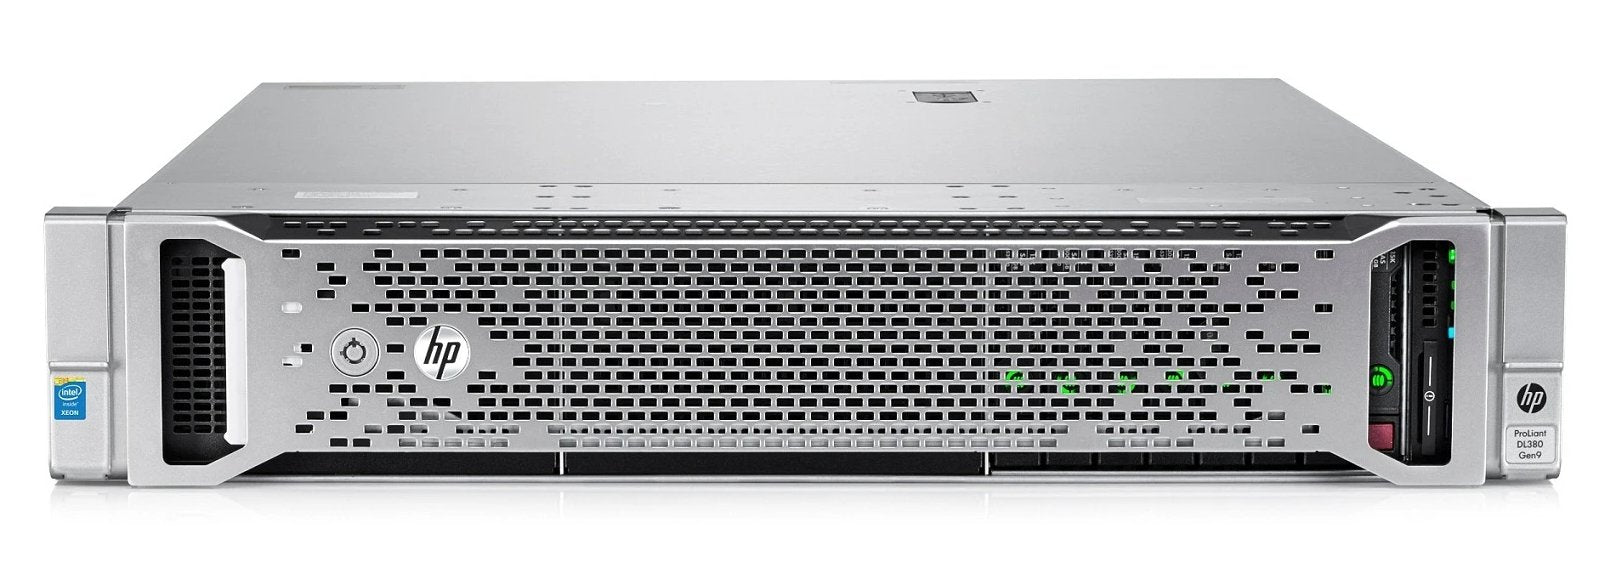 Refurbished HPE ProLiant DL380 Gen9 Configure to Order Server